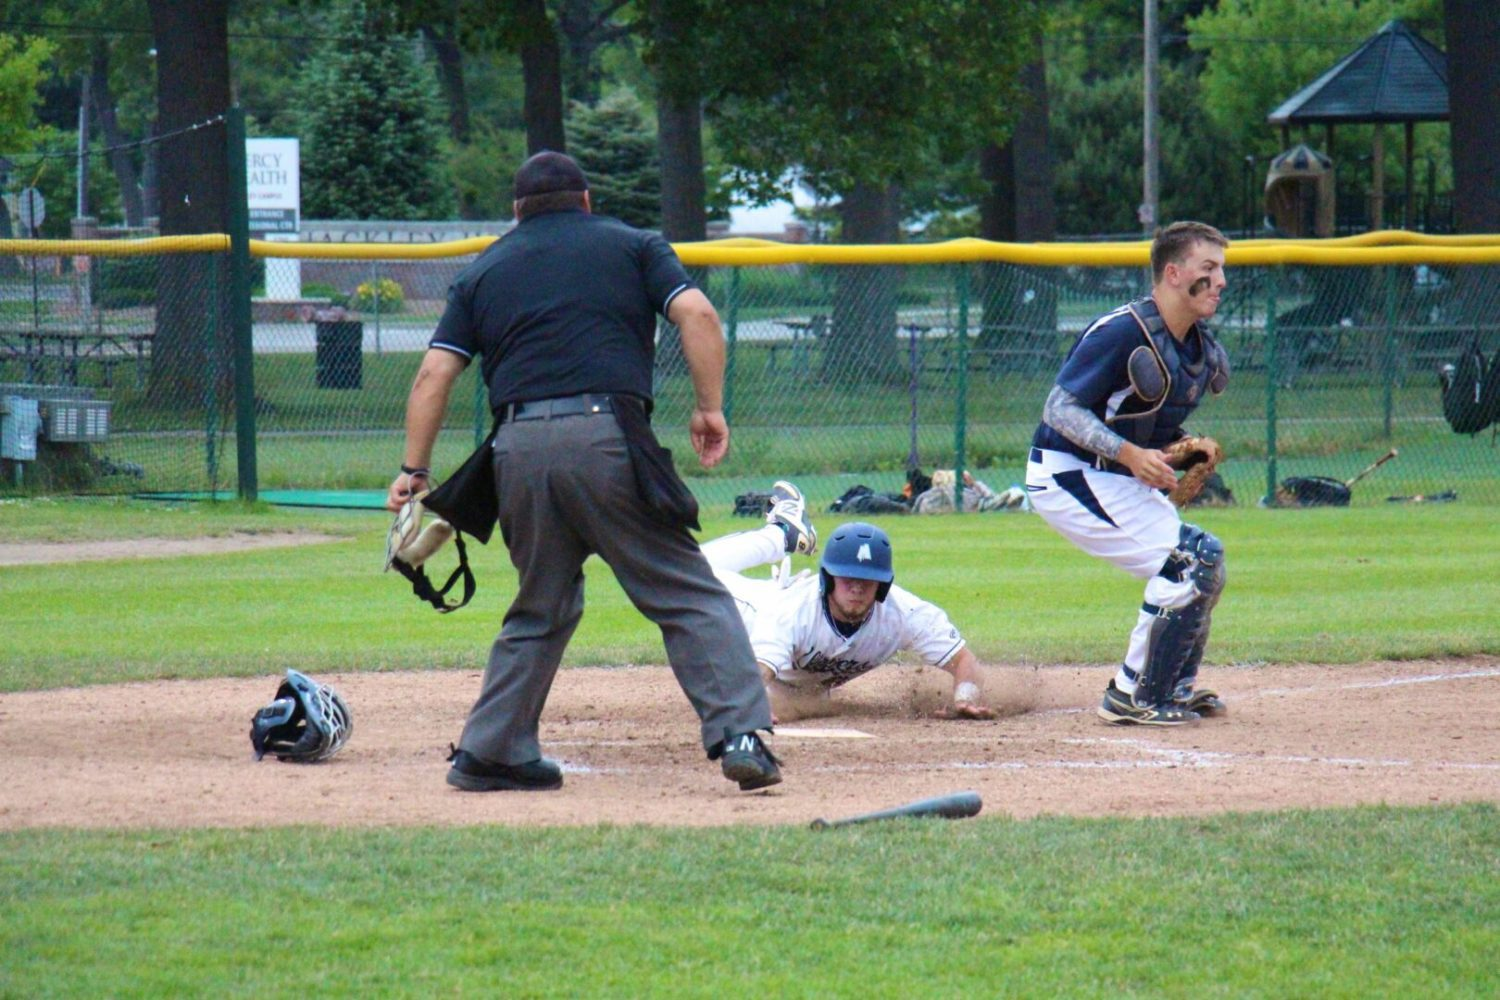 Clippers rally from a six-run deficit to defeat Bloomfield 12-6 in a wild game at Marsh Field